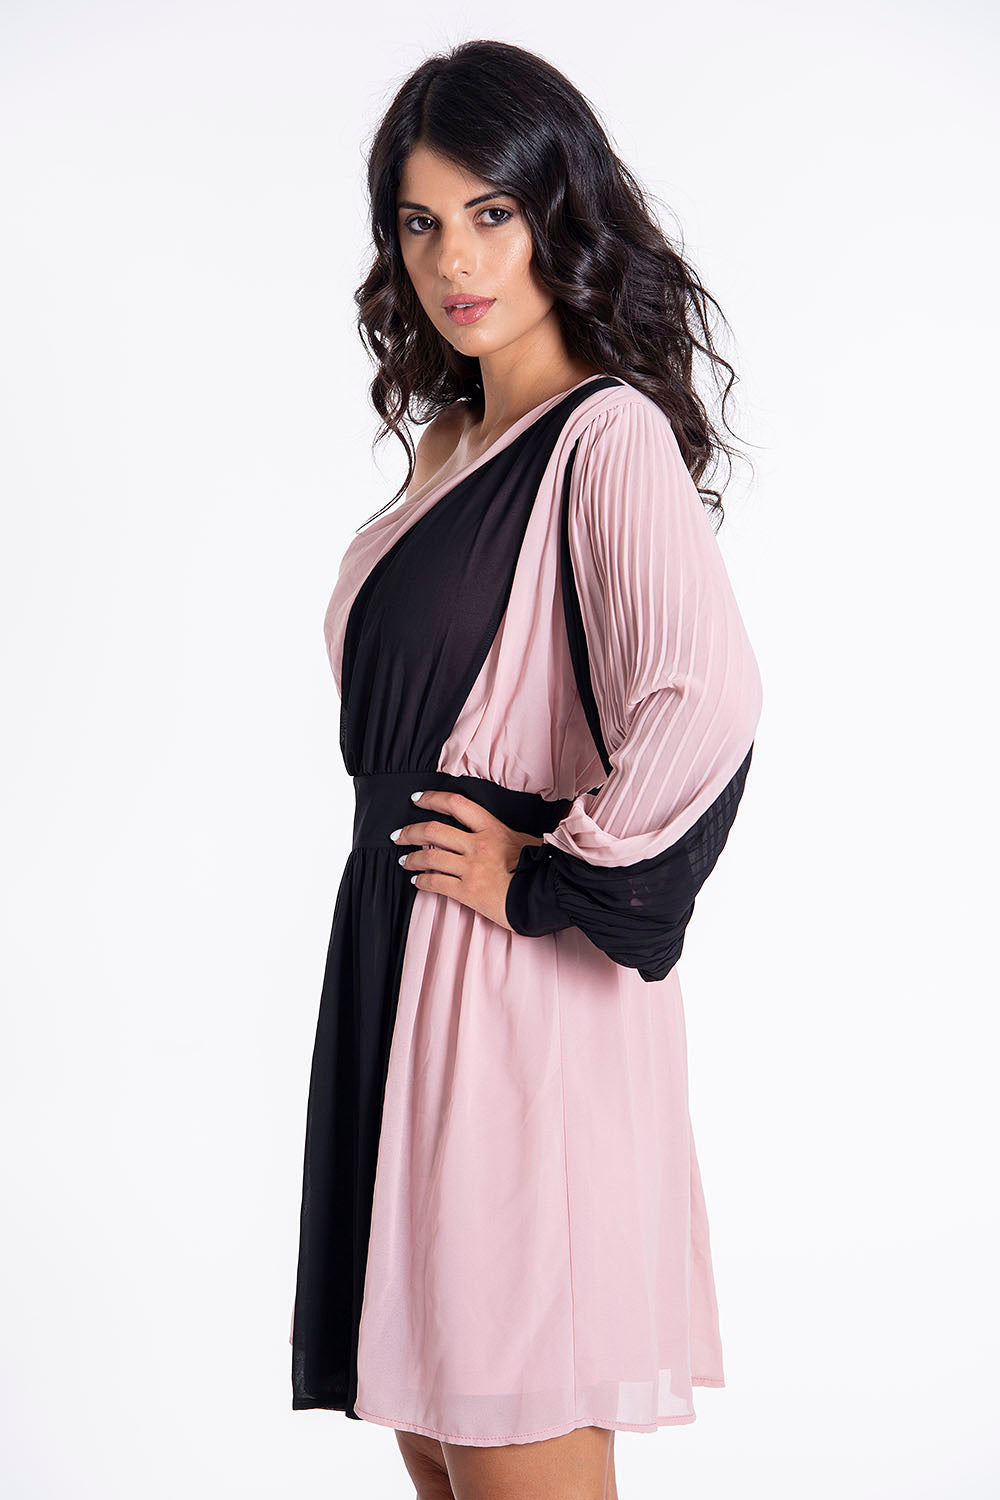 Hellen Batterr elegant mini one sleeve dress